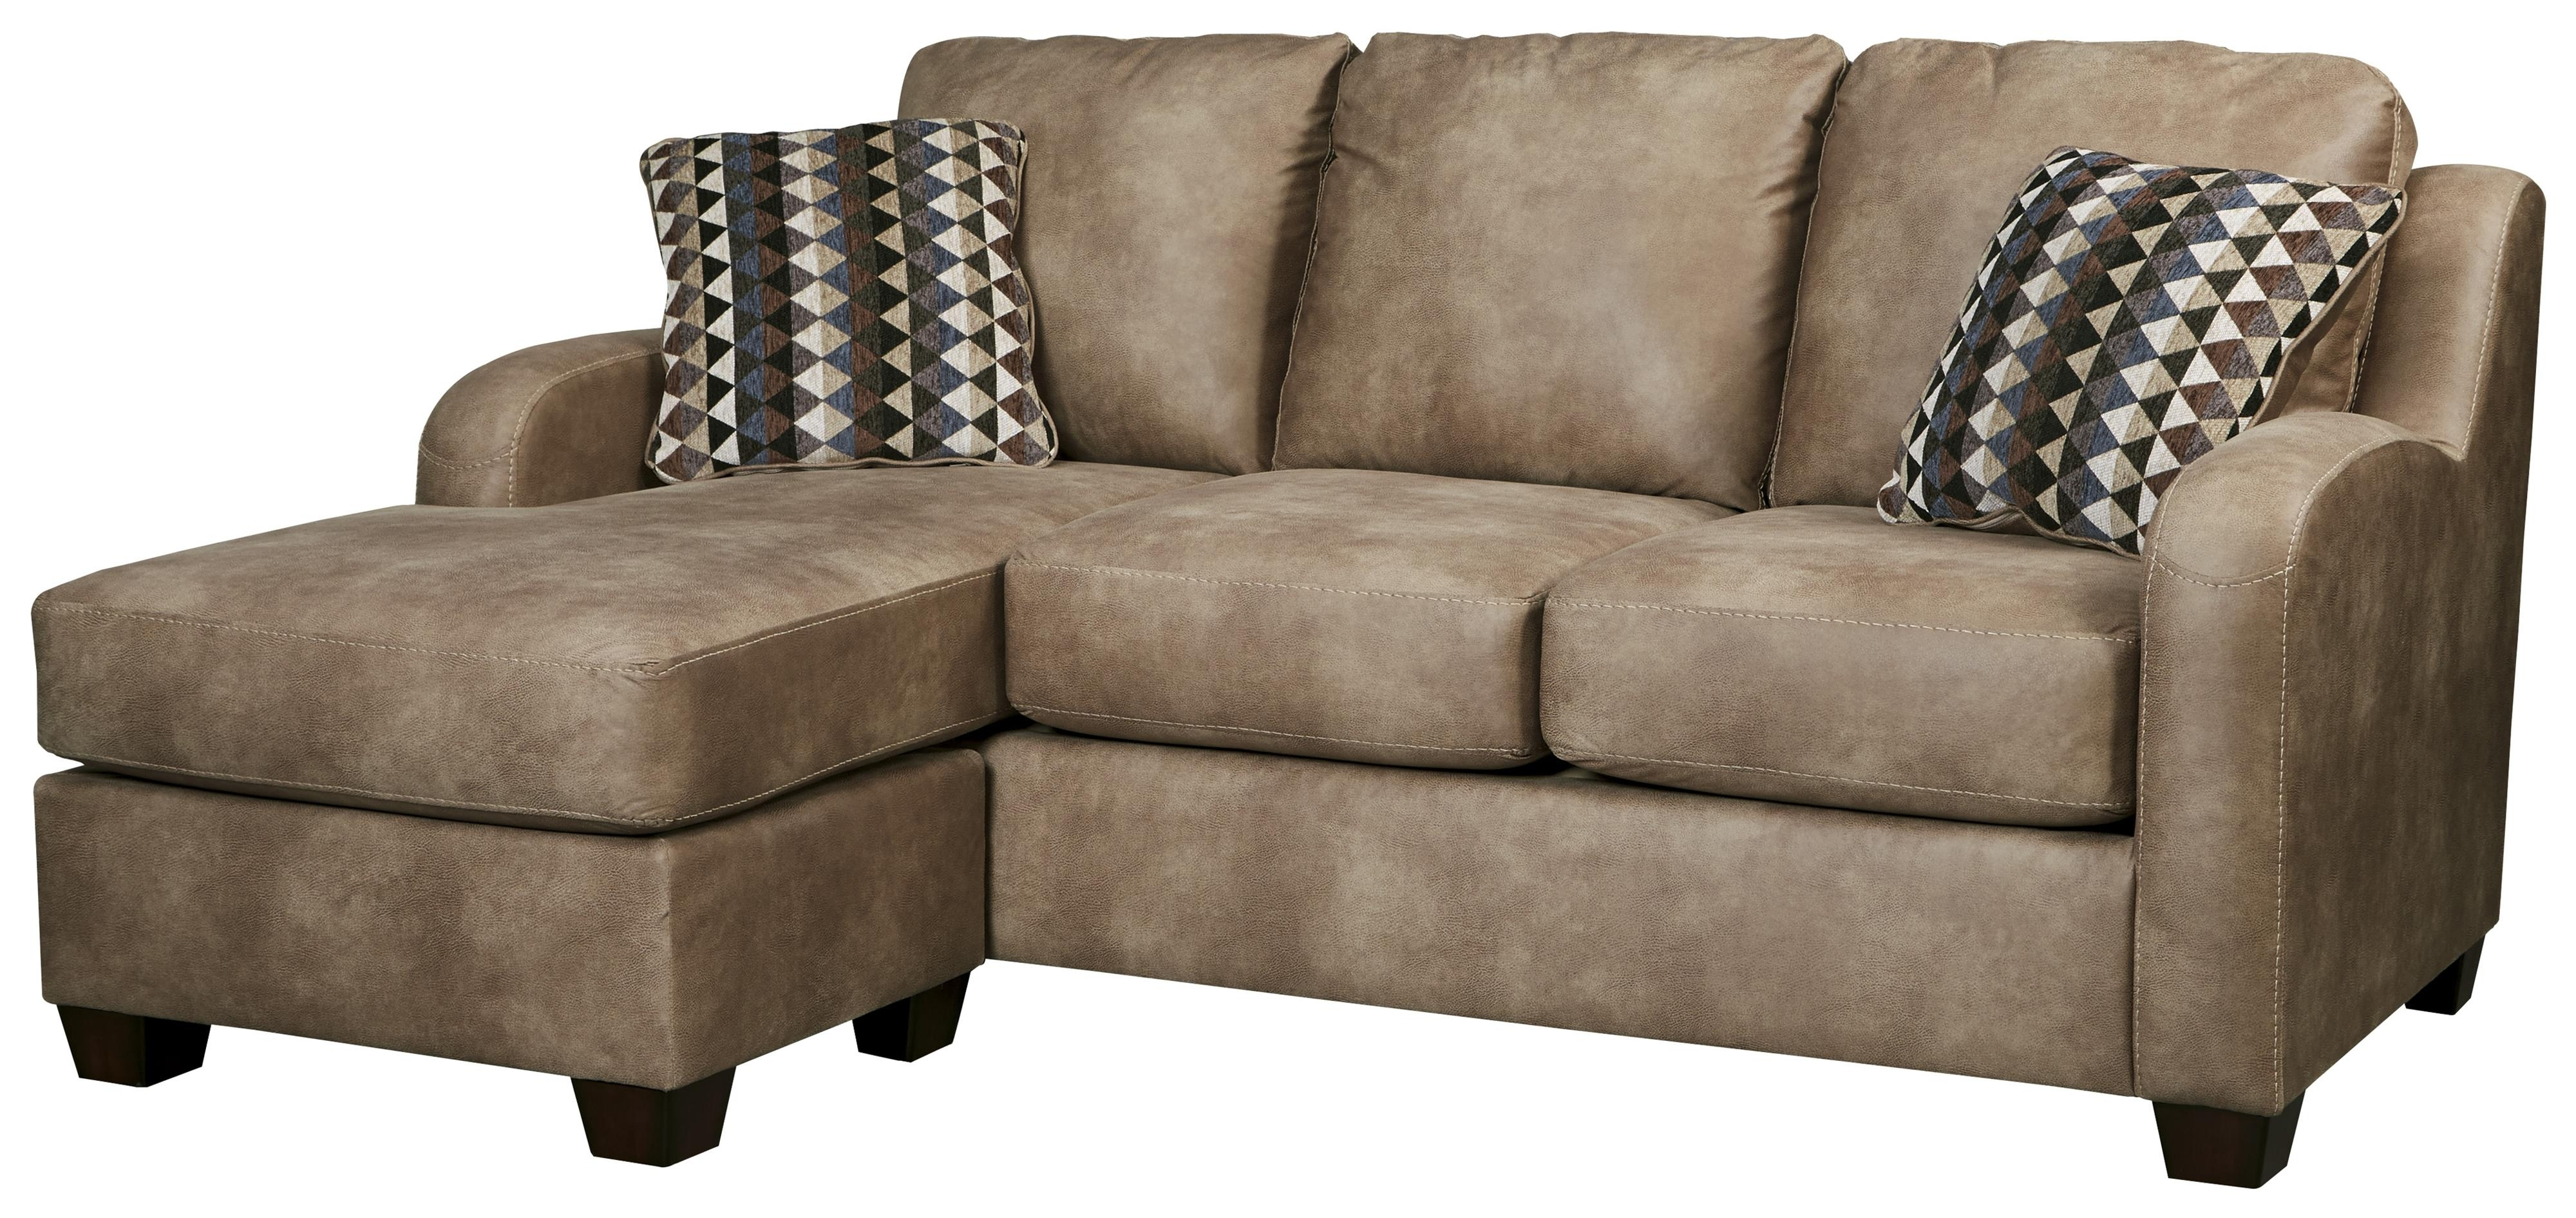 Popular Leather Sofas With Chaise Throughout Contemporary Faux Leather Sofa Chaisebenchcraft (View 14 of 15)